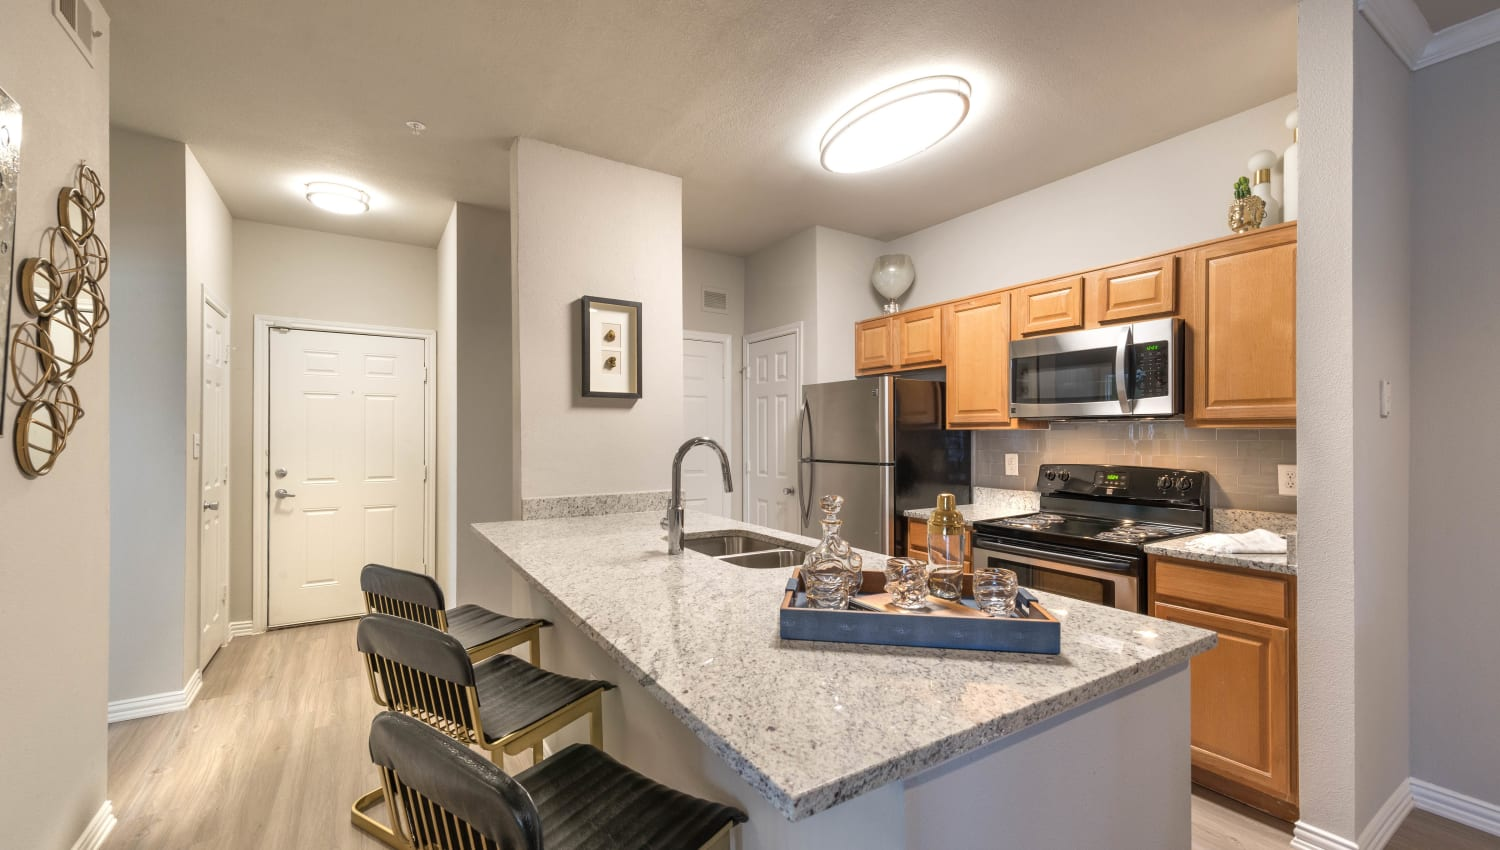 Bar seating at the kitchen island in a model apartment at Olympus Stone Glen in Keller, Texas